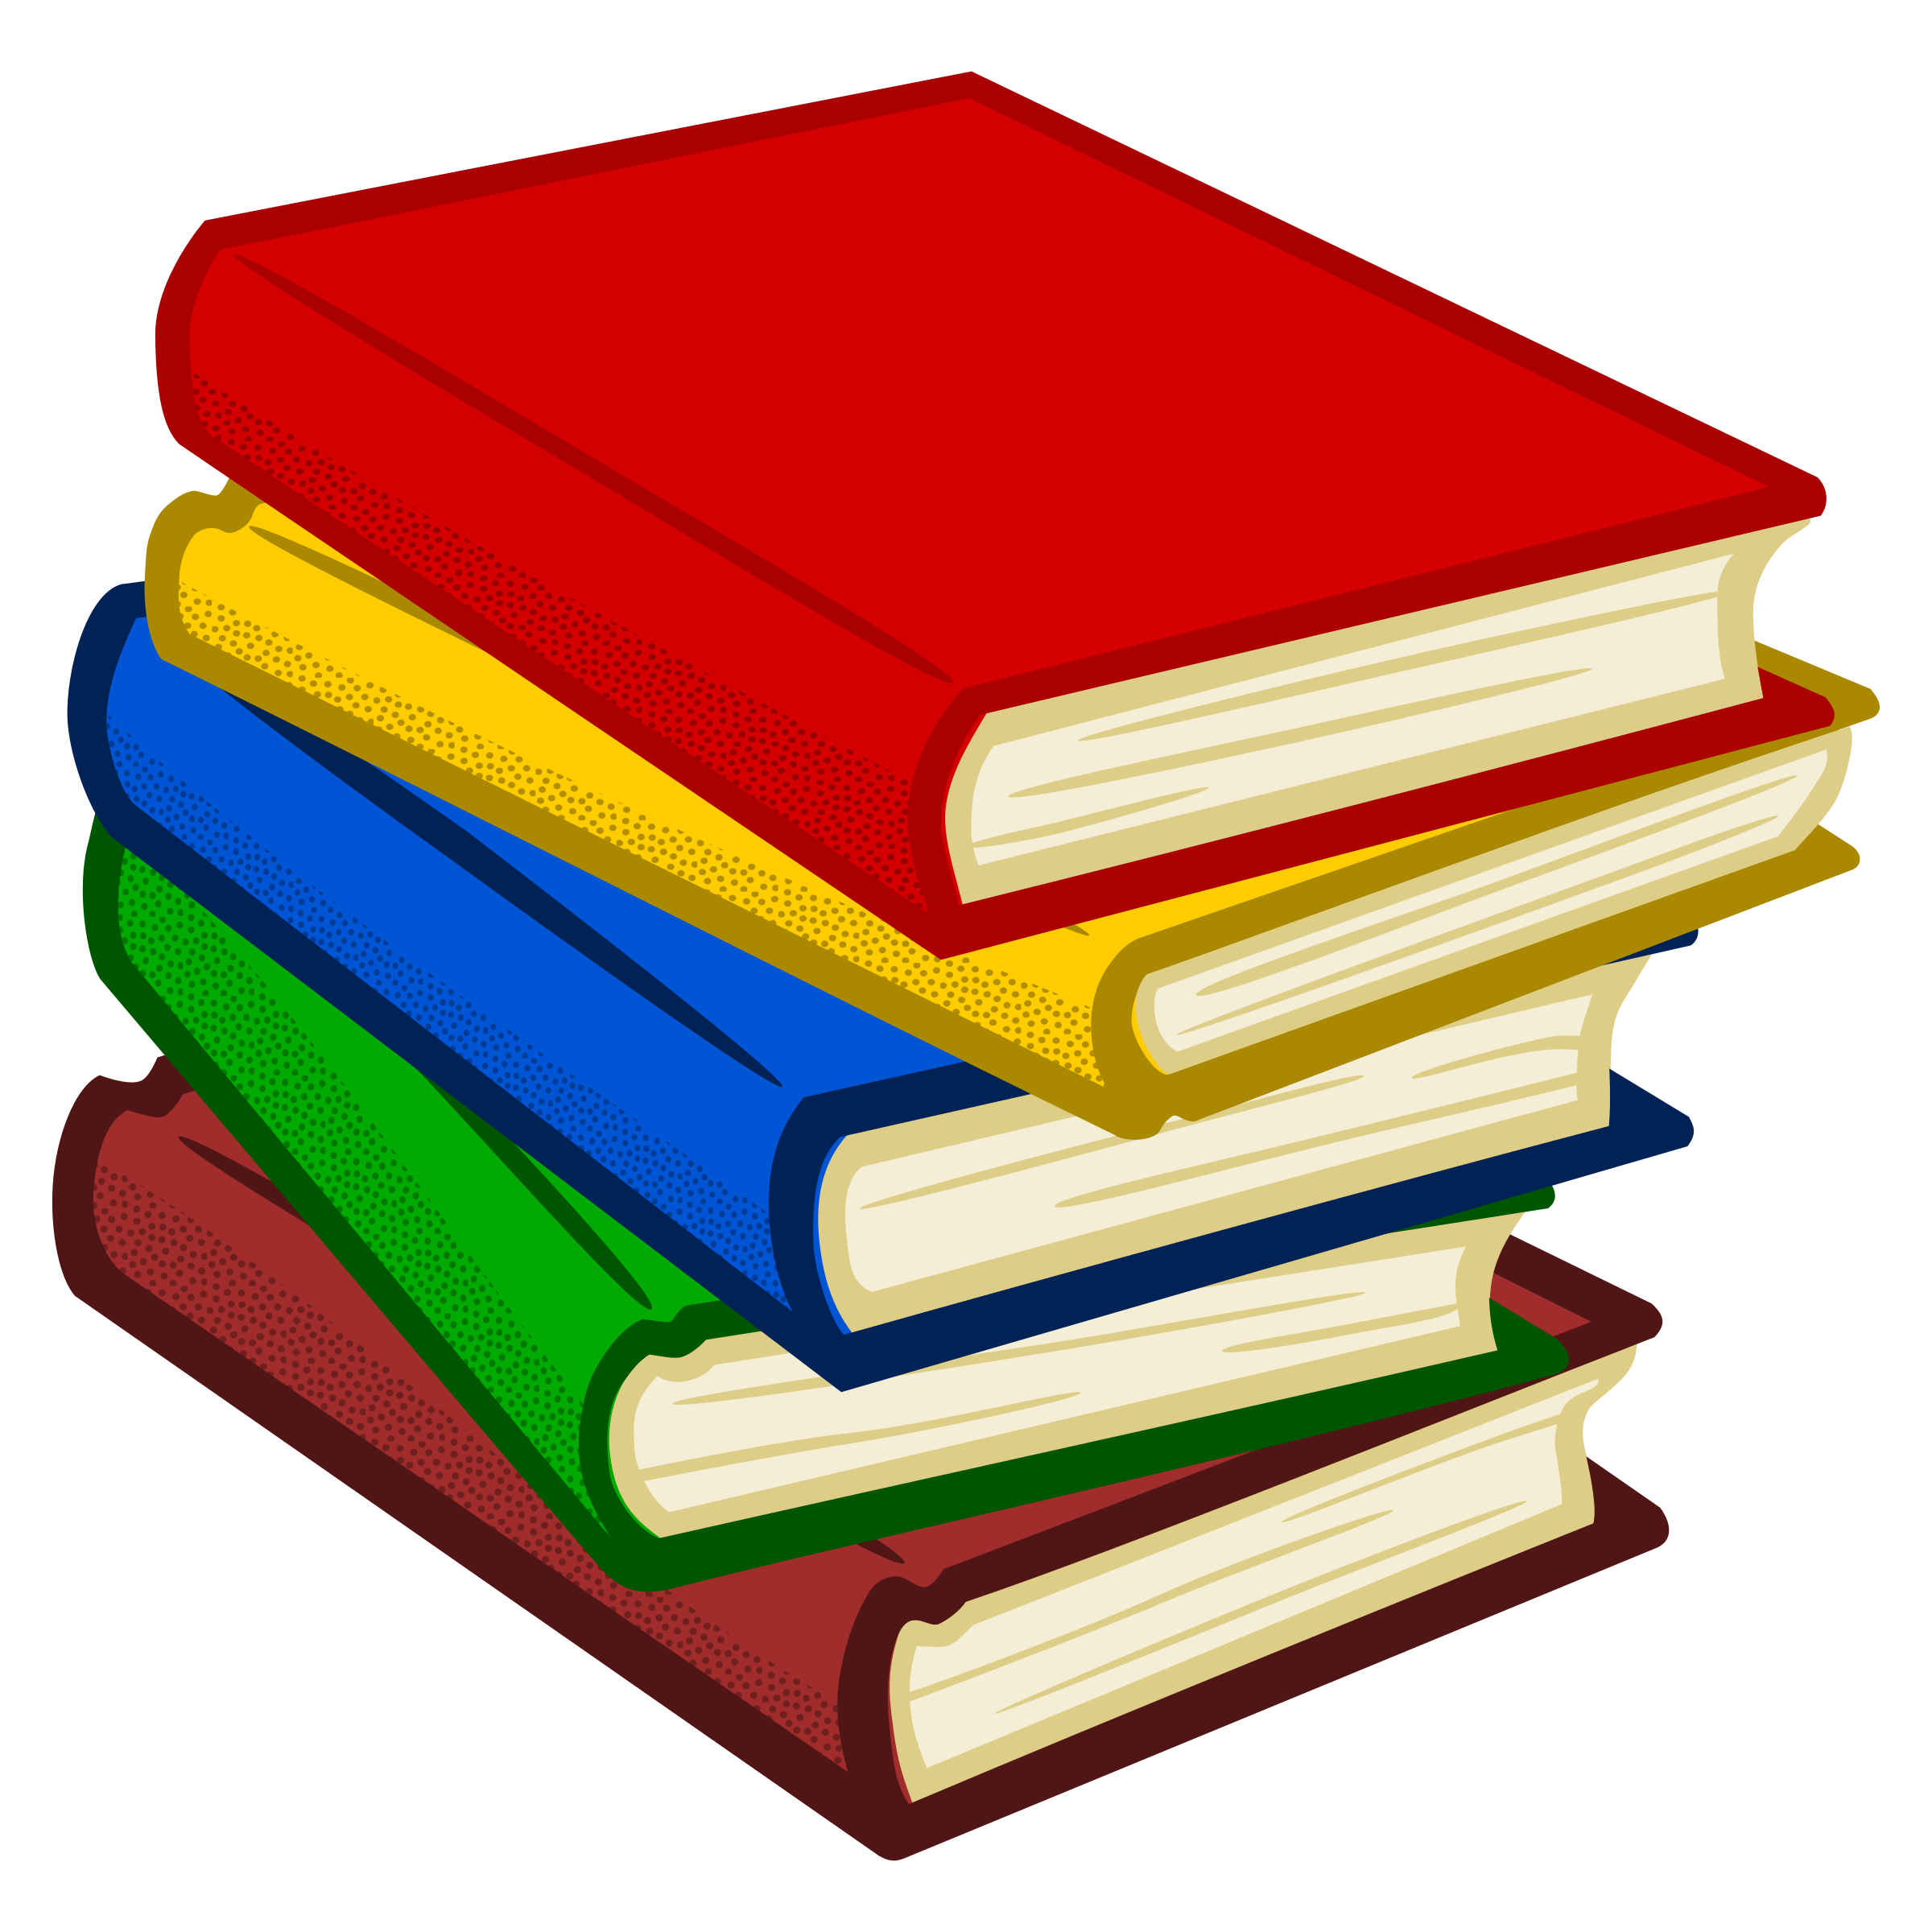 Notebook clipart red book Of books coloured Clipart Clipart